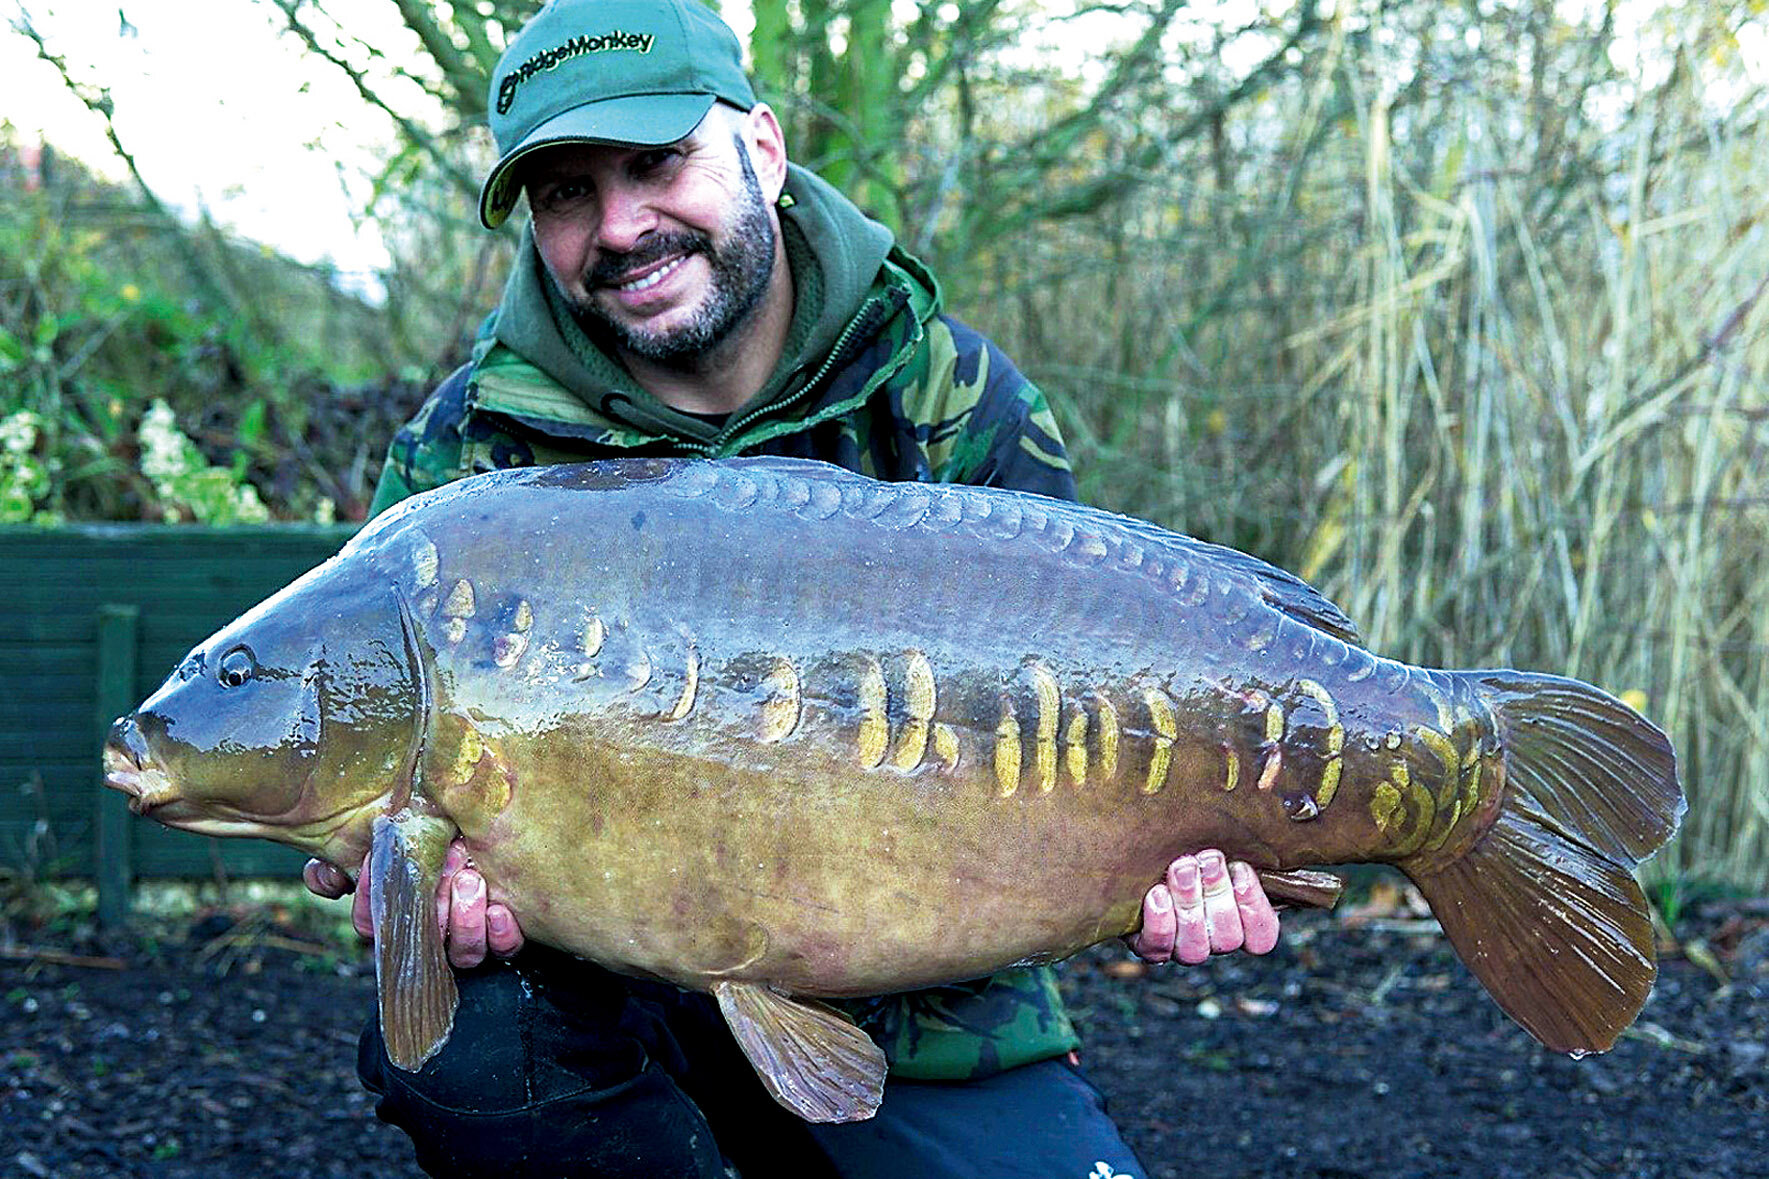 A winter 45-pounder for Dave, this time his 4x4 rig did the honours... 4 inch hooklink, 4oz lead